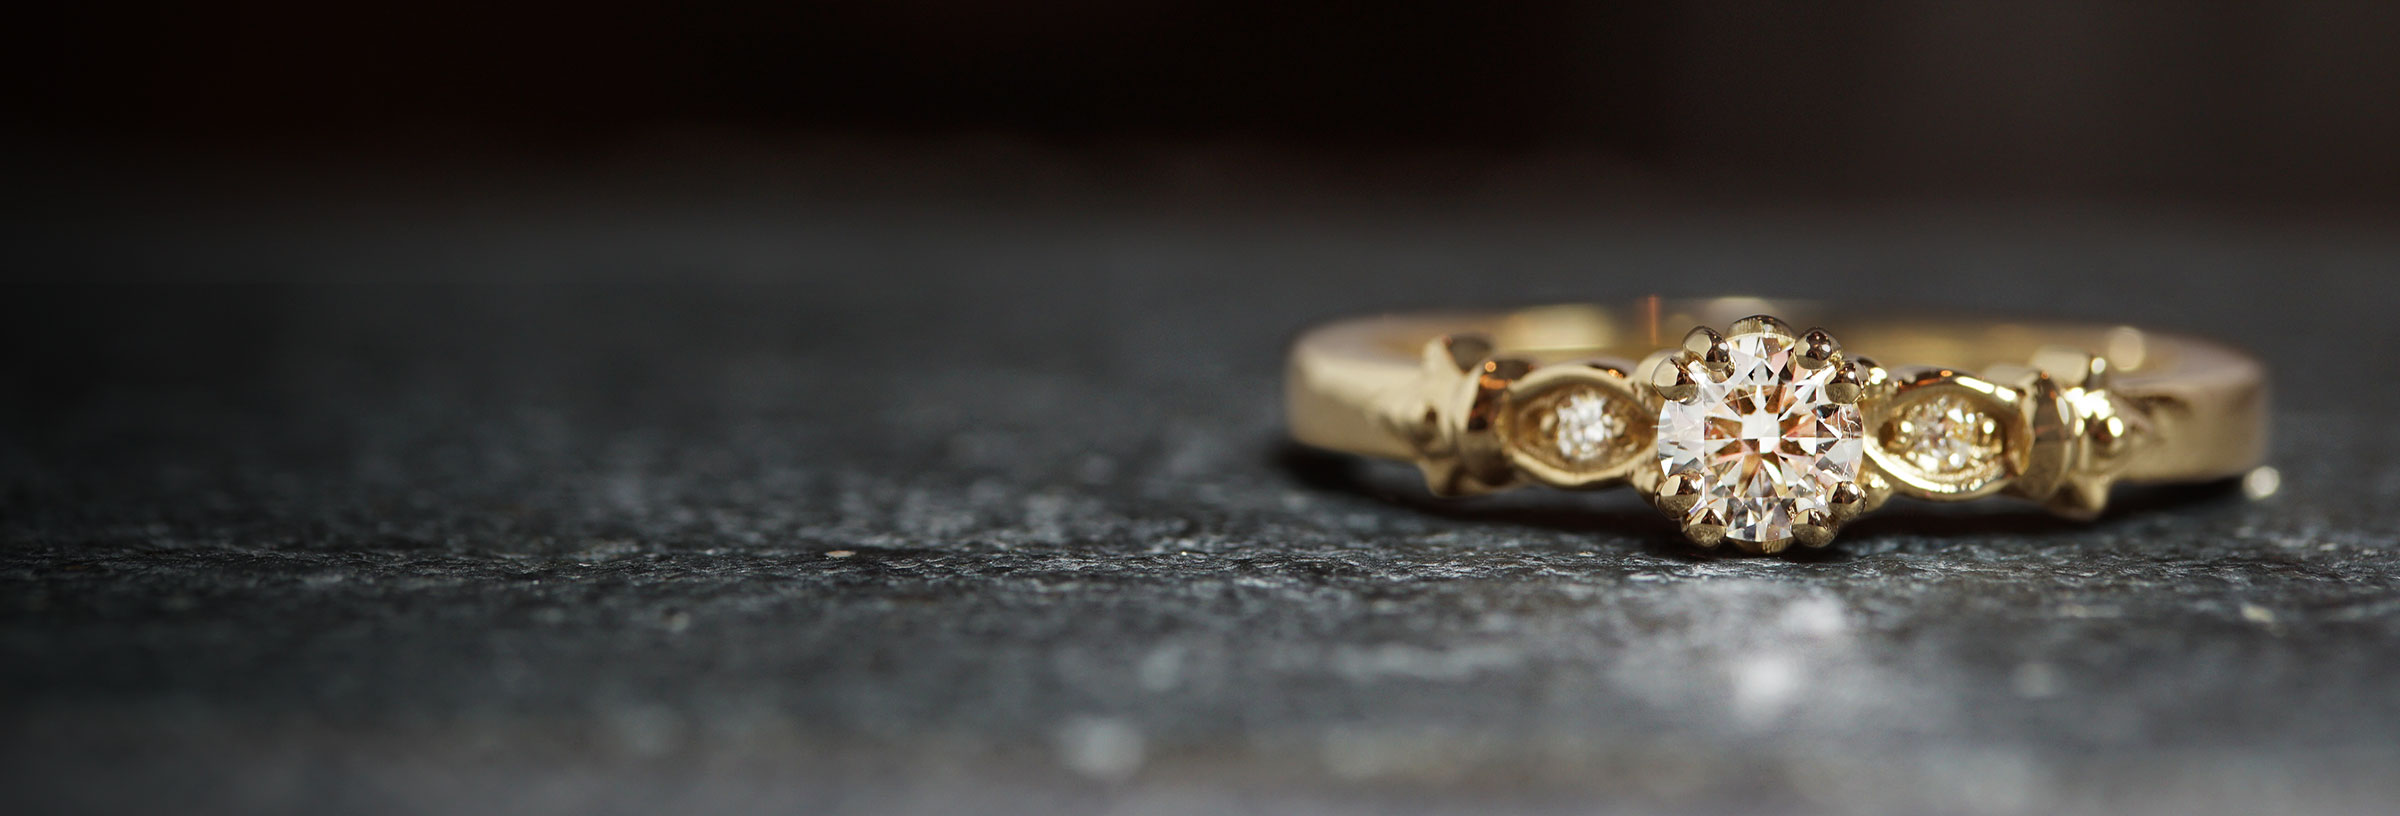 fleur-de-lis-inspired-yellow-gold-and-diamond-engagement-ring